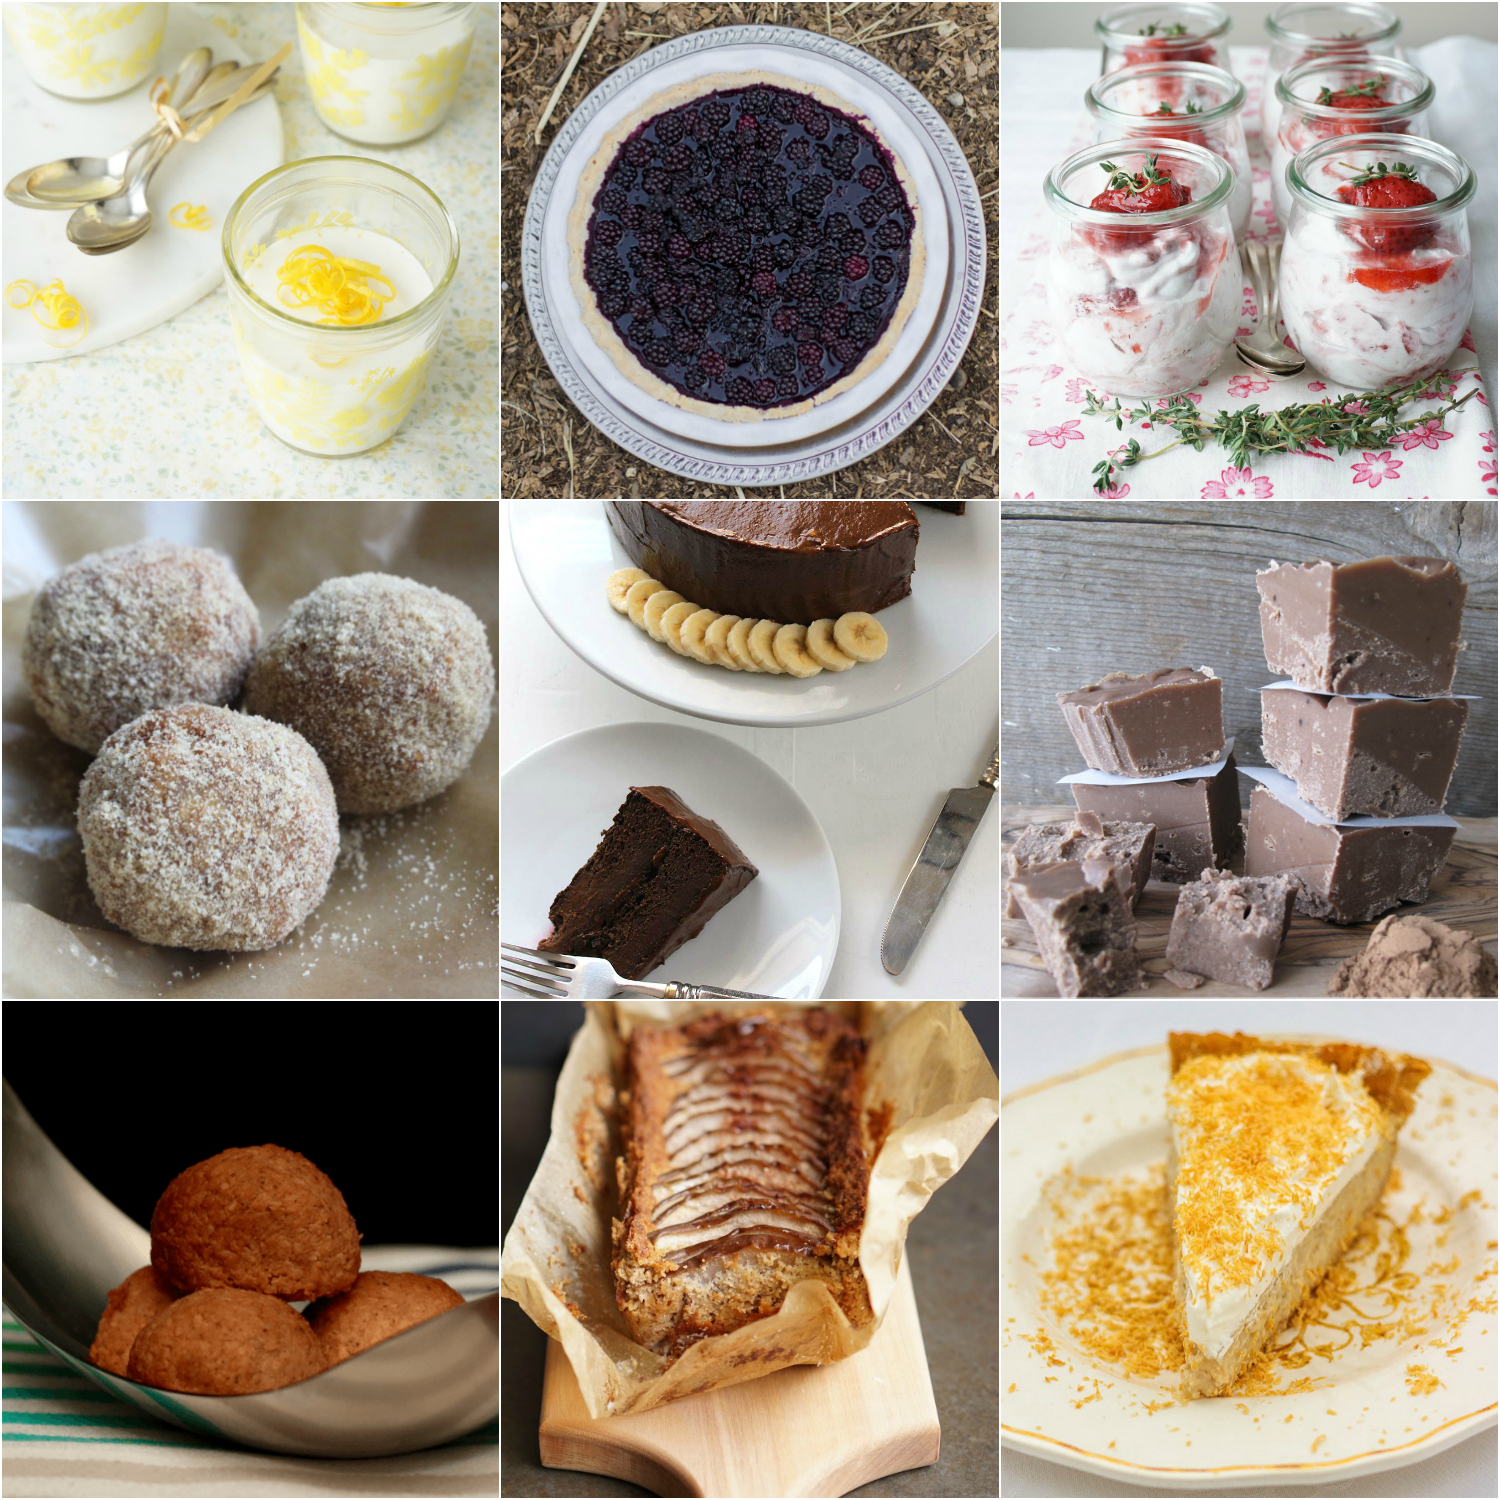 50 Low-Sugar Paleo AIP Dessert Recipes | Phoenix Helix